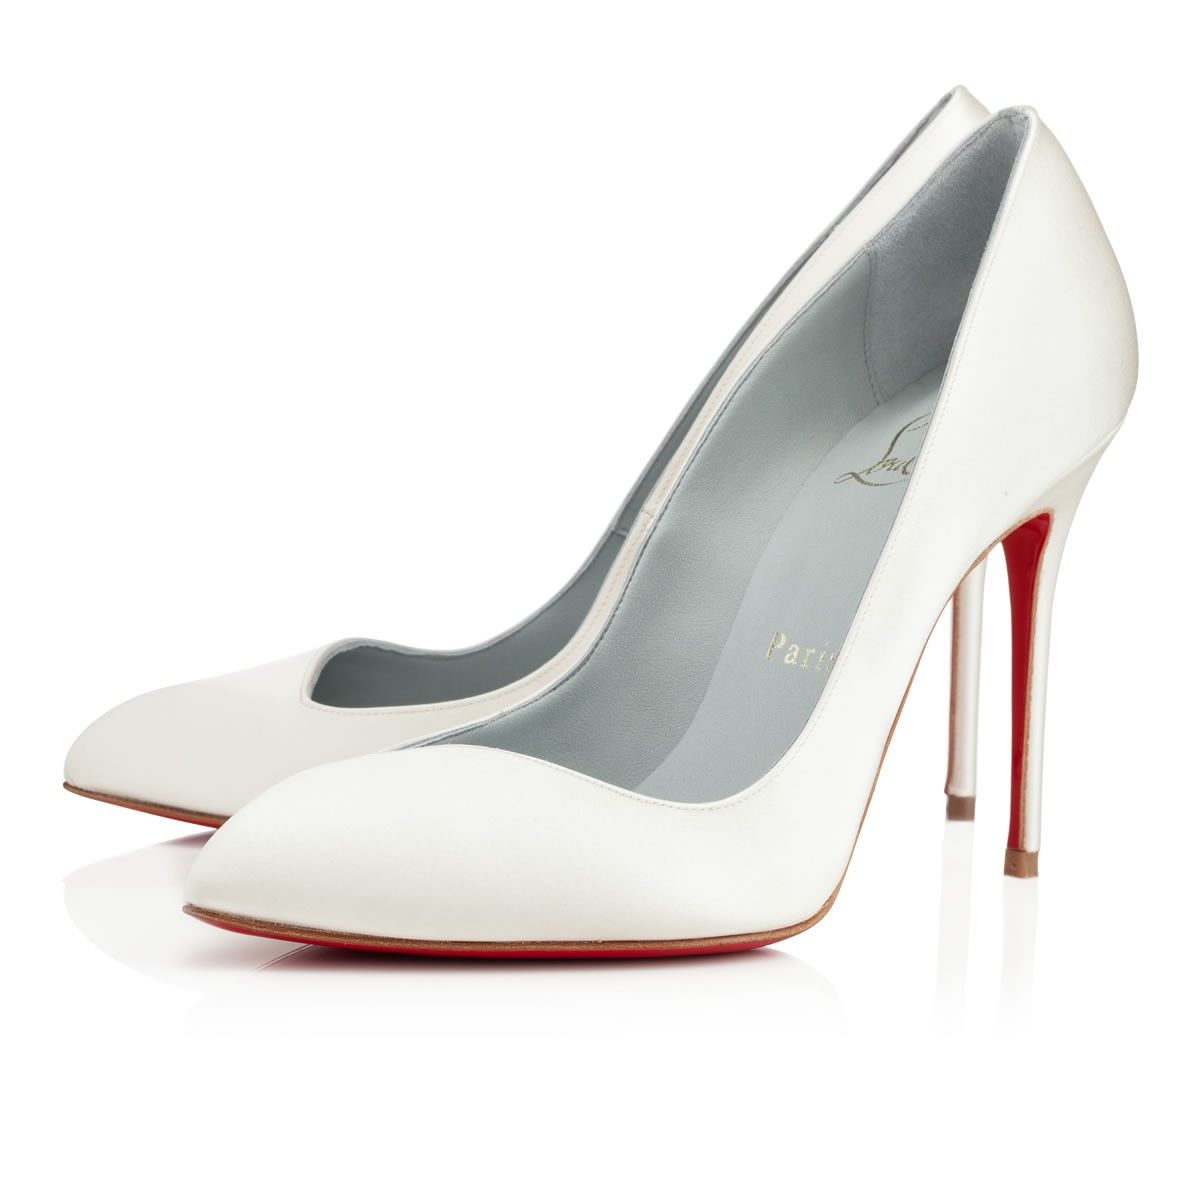 White Pump Satin Pumps Louboutin Corneille Off 100 Mm High Heels Clic Collection